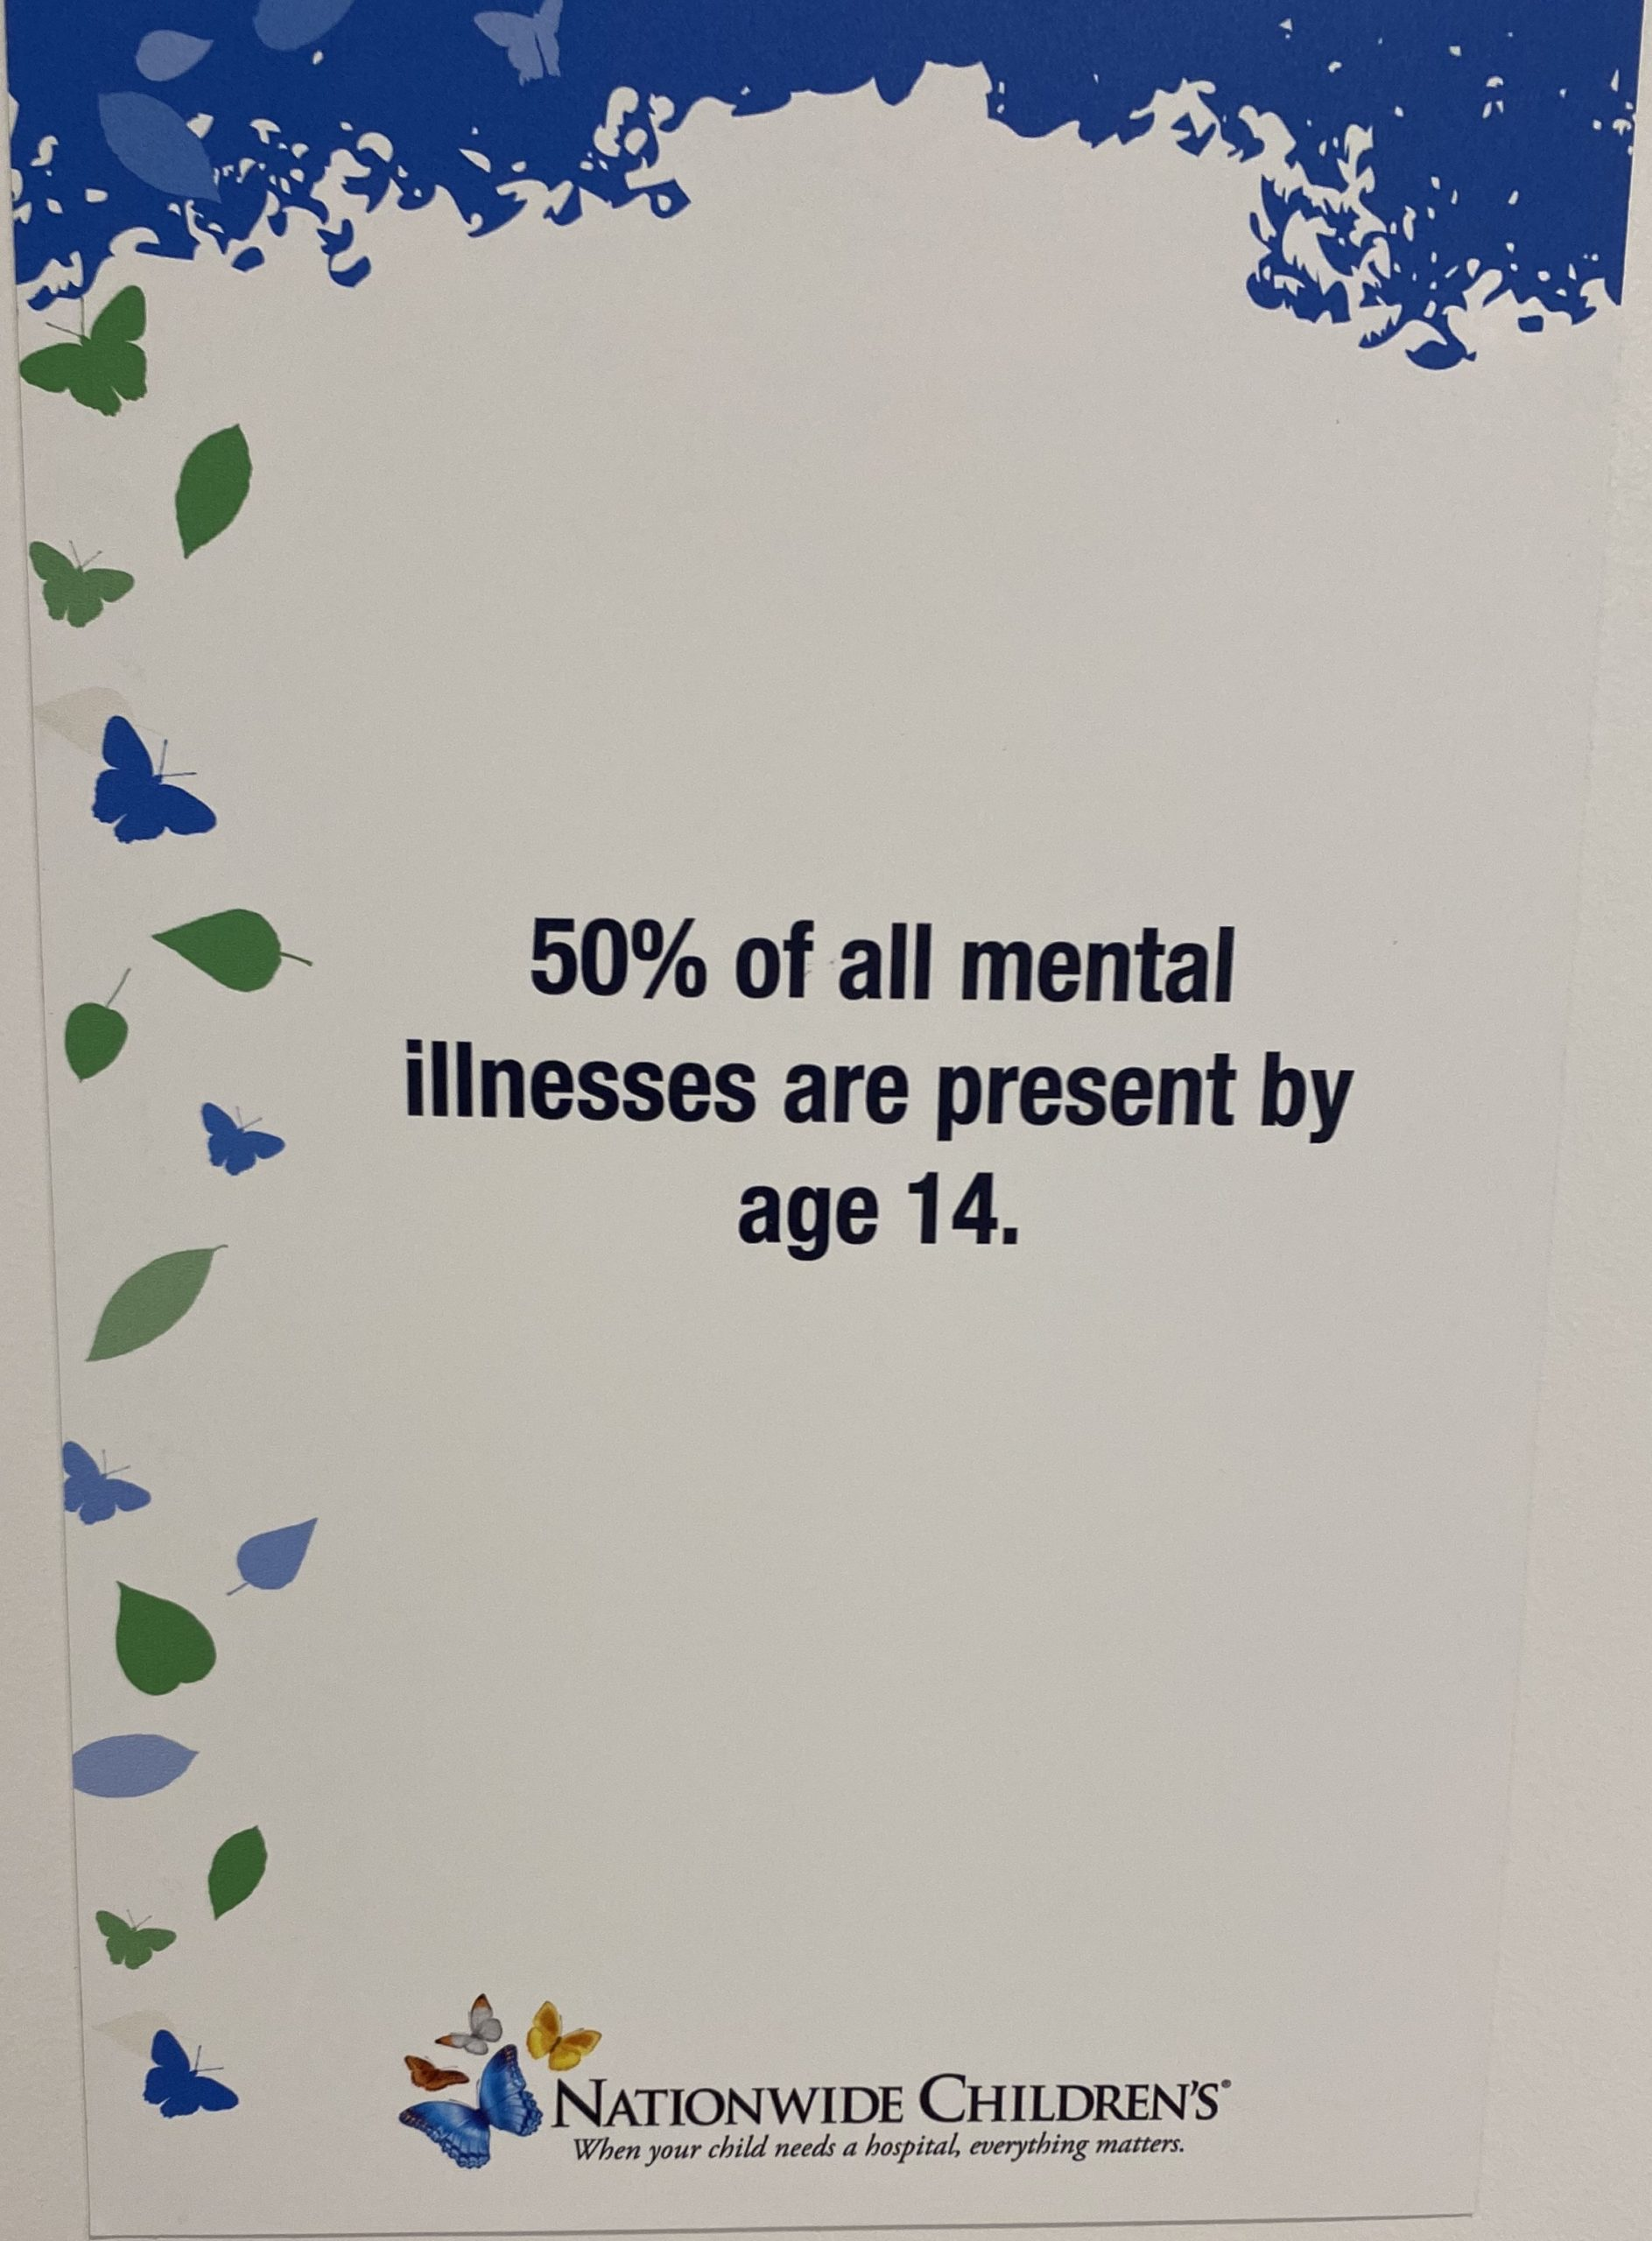 50% of all mental illnesses are present by age 14.